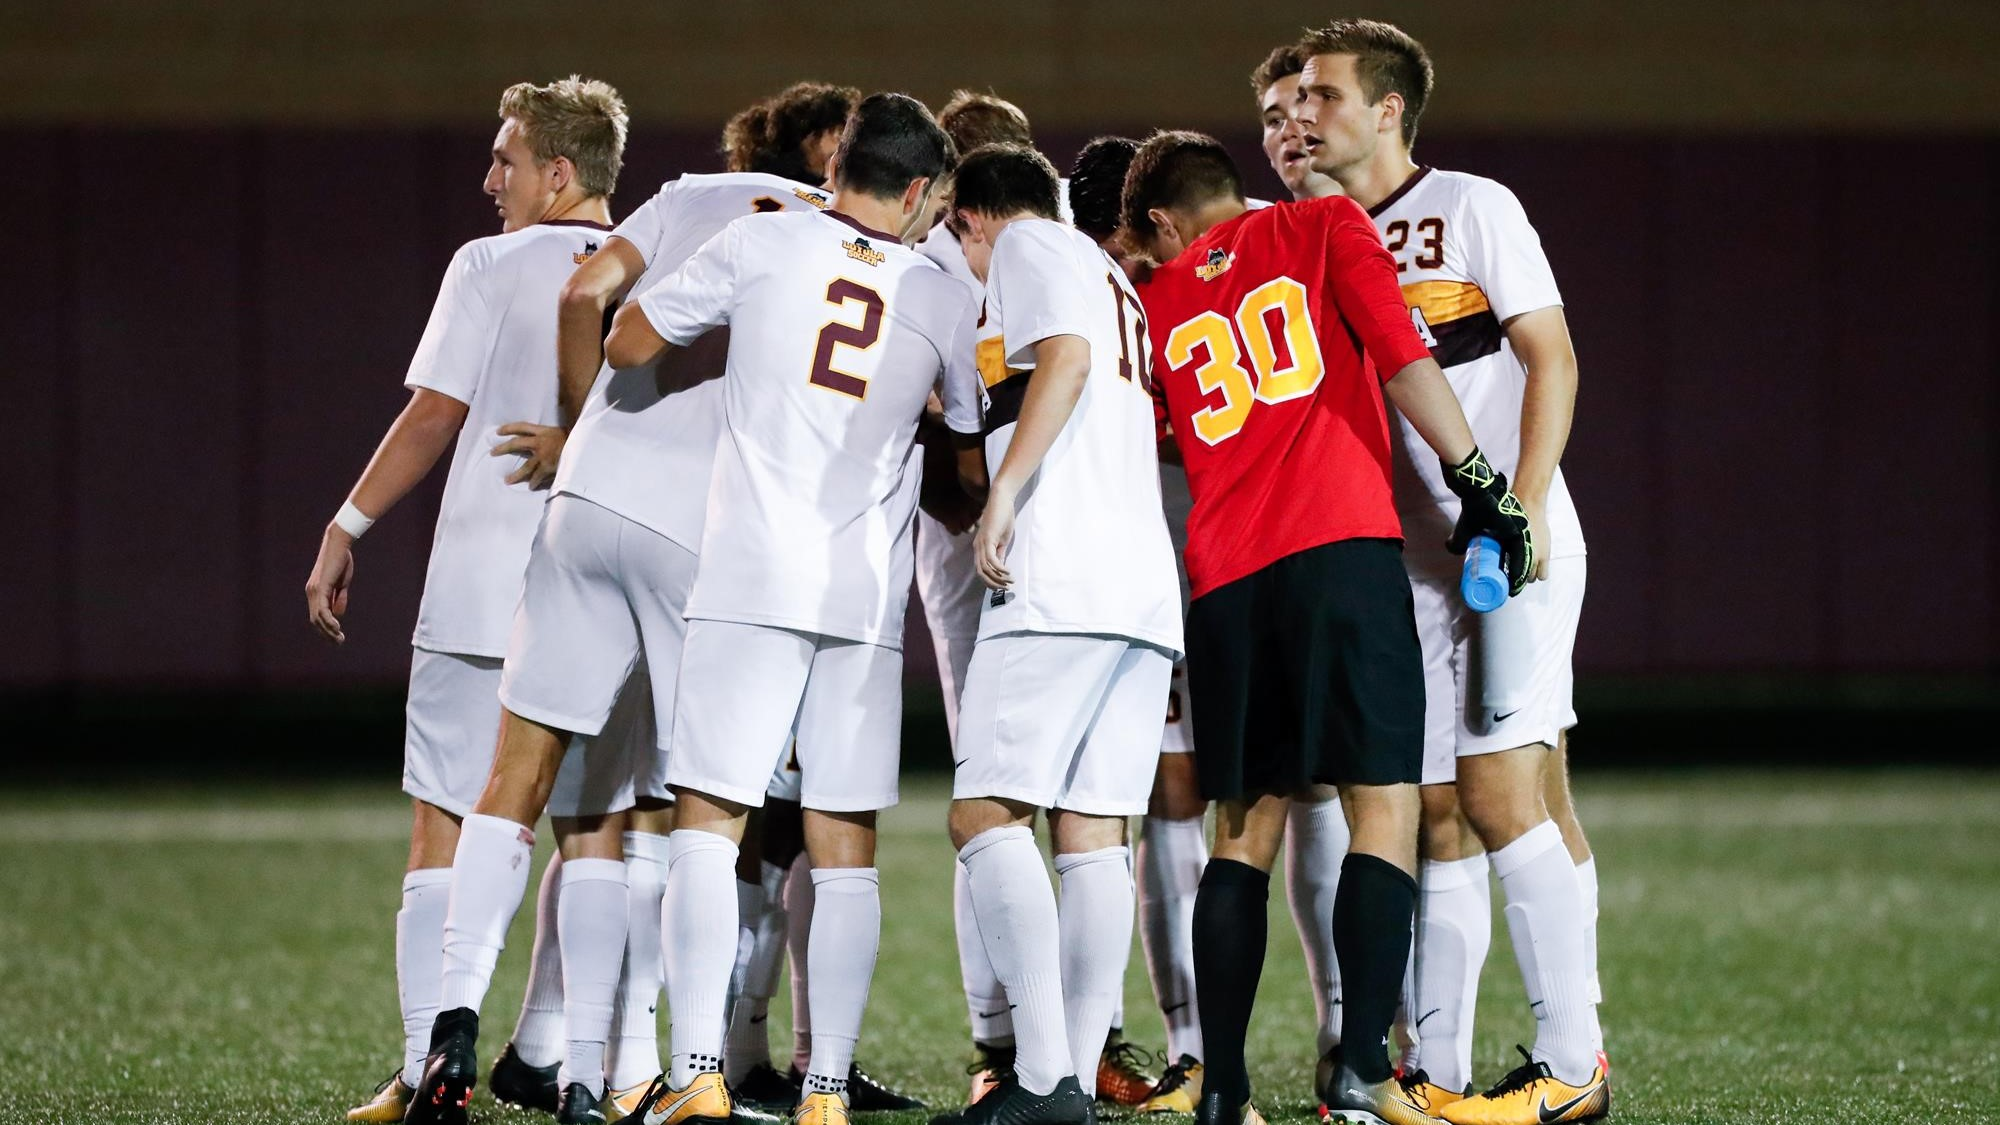 A Closer Look at the 2018 Loyola Men s Soccer Team - Loyola ... 94a8a8dbe